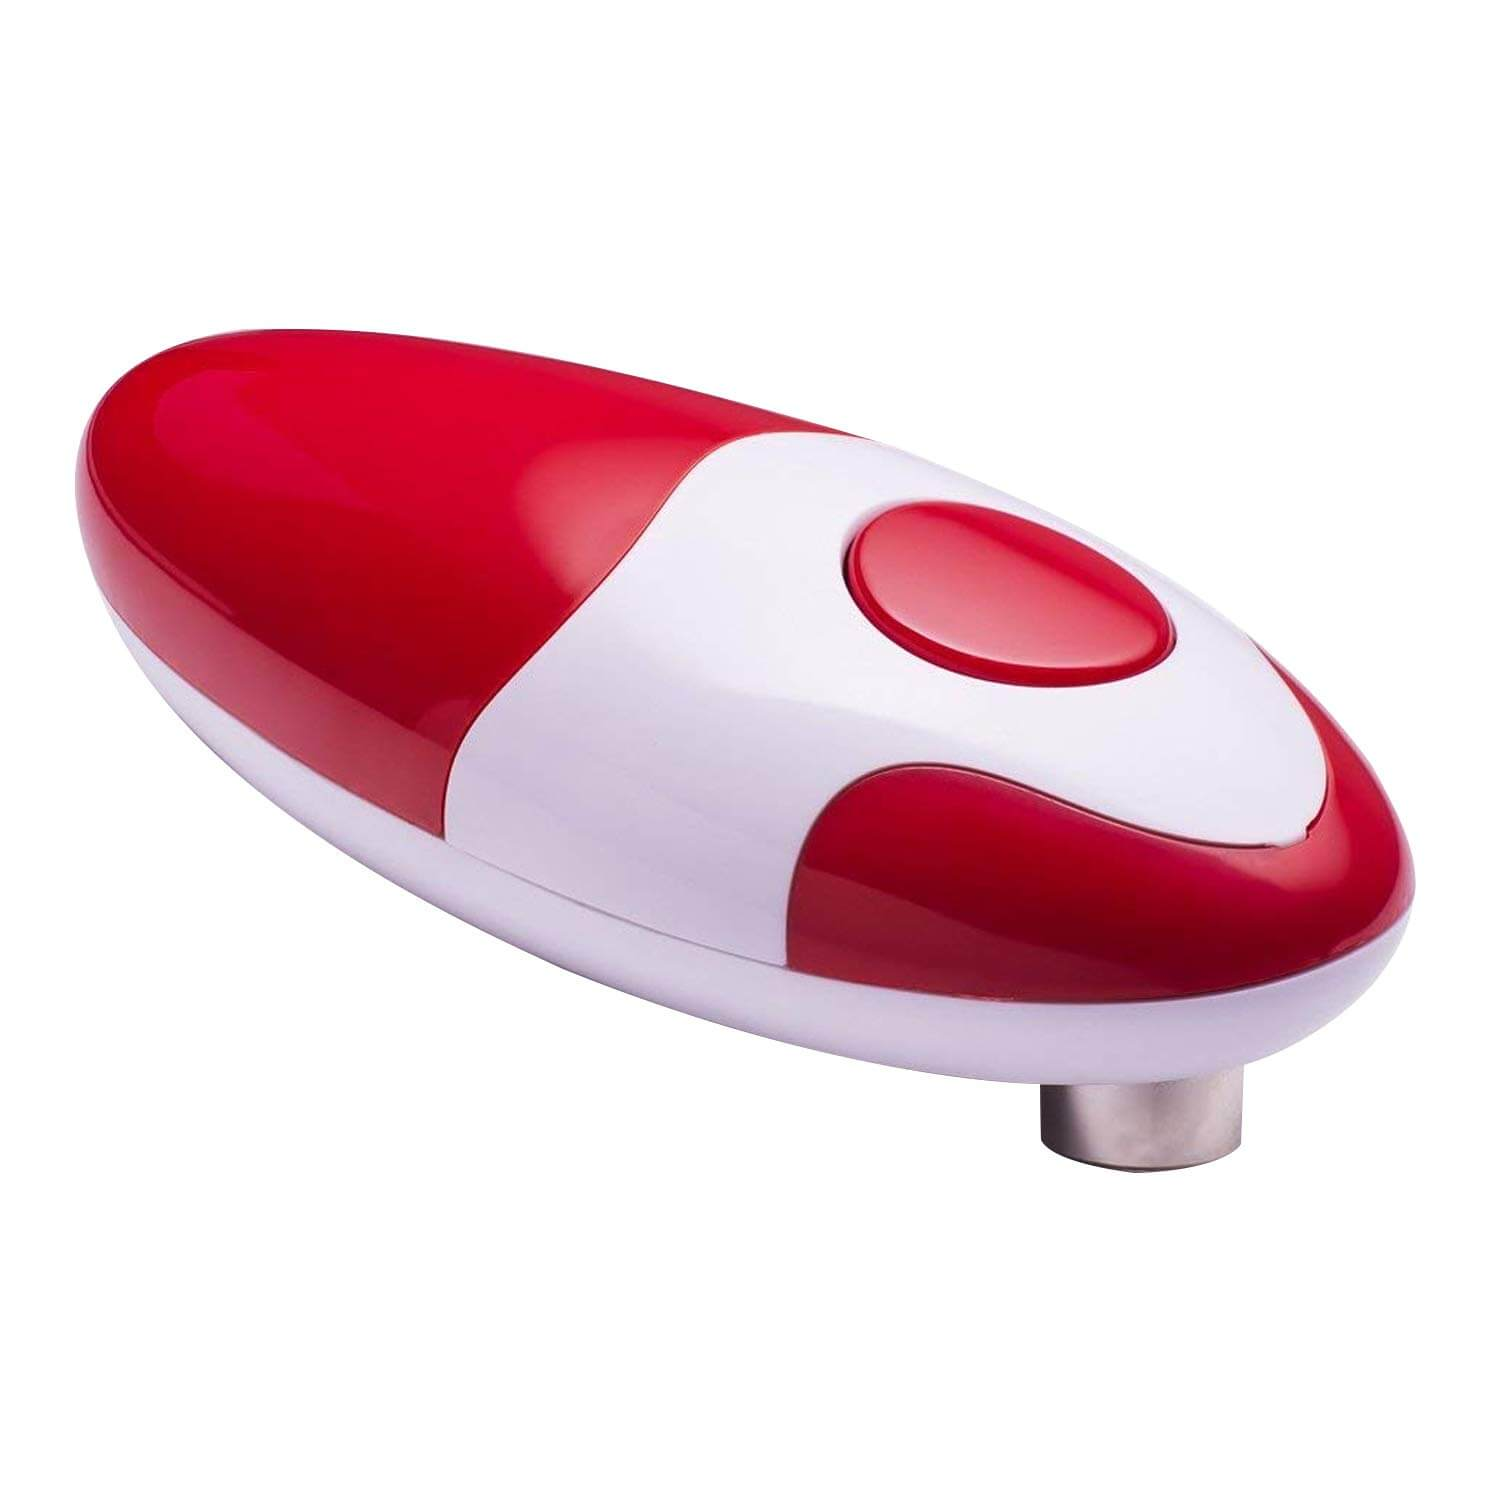 Chef's Star Electric Can Opener